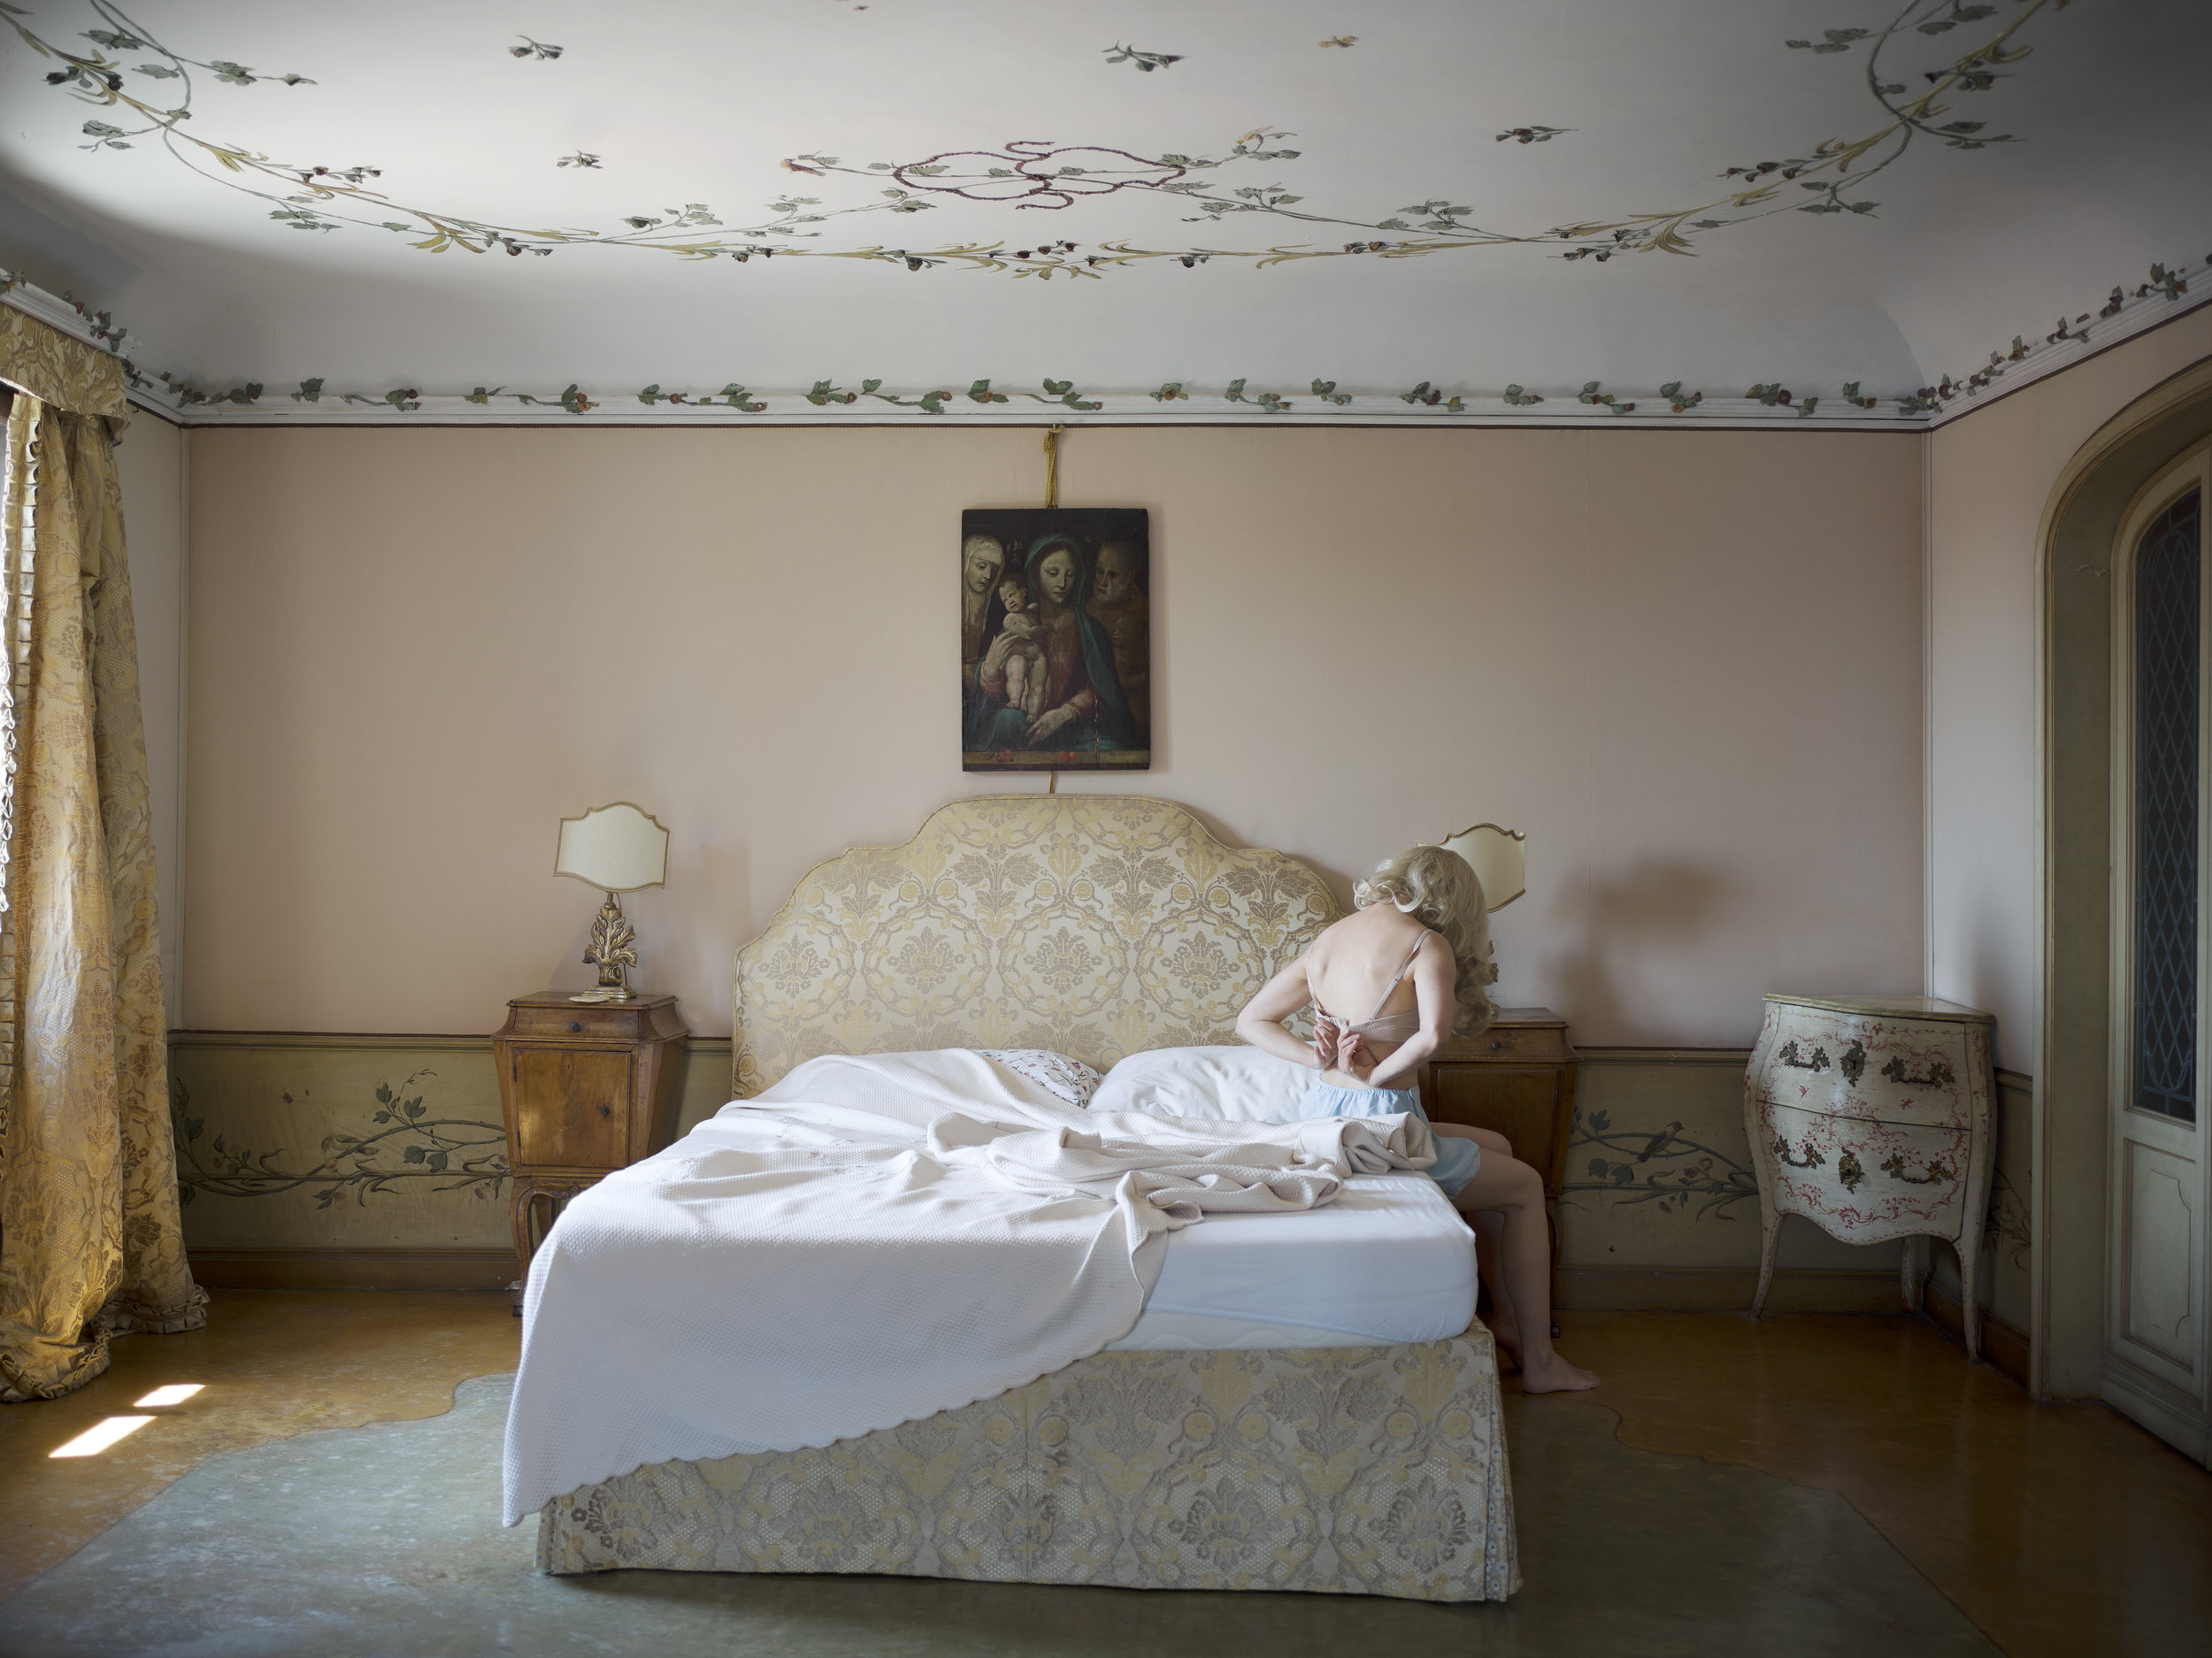 The Girl of Constant sorrow, 2016 © Anja Niemi. Courtesy of The Ravestijn Gallery.